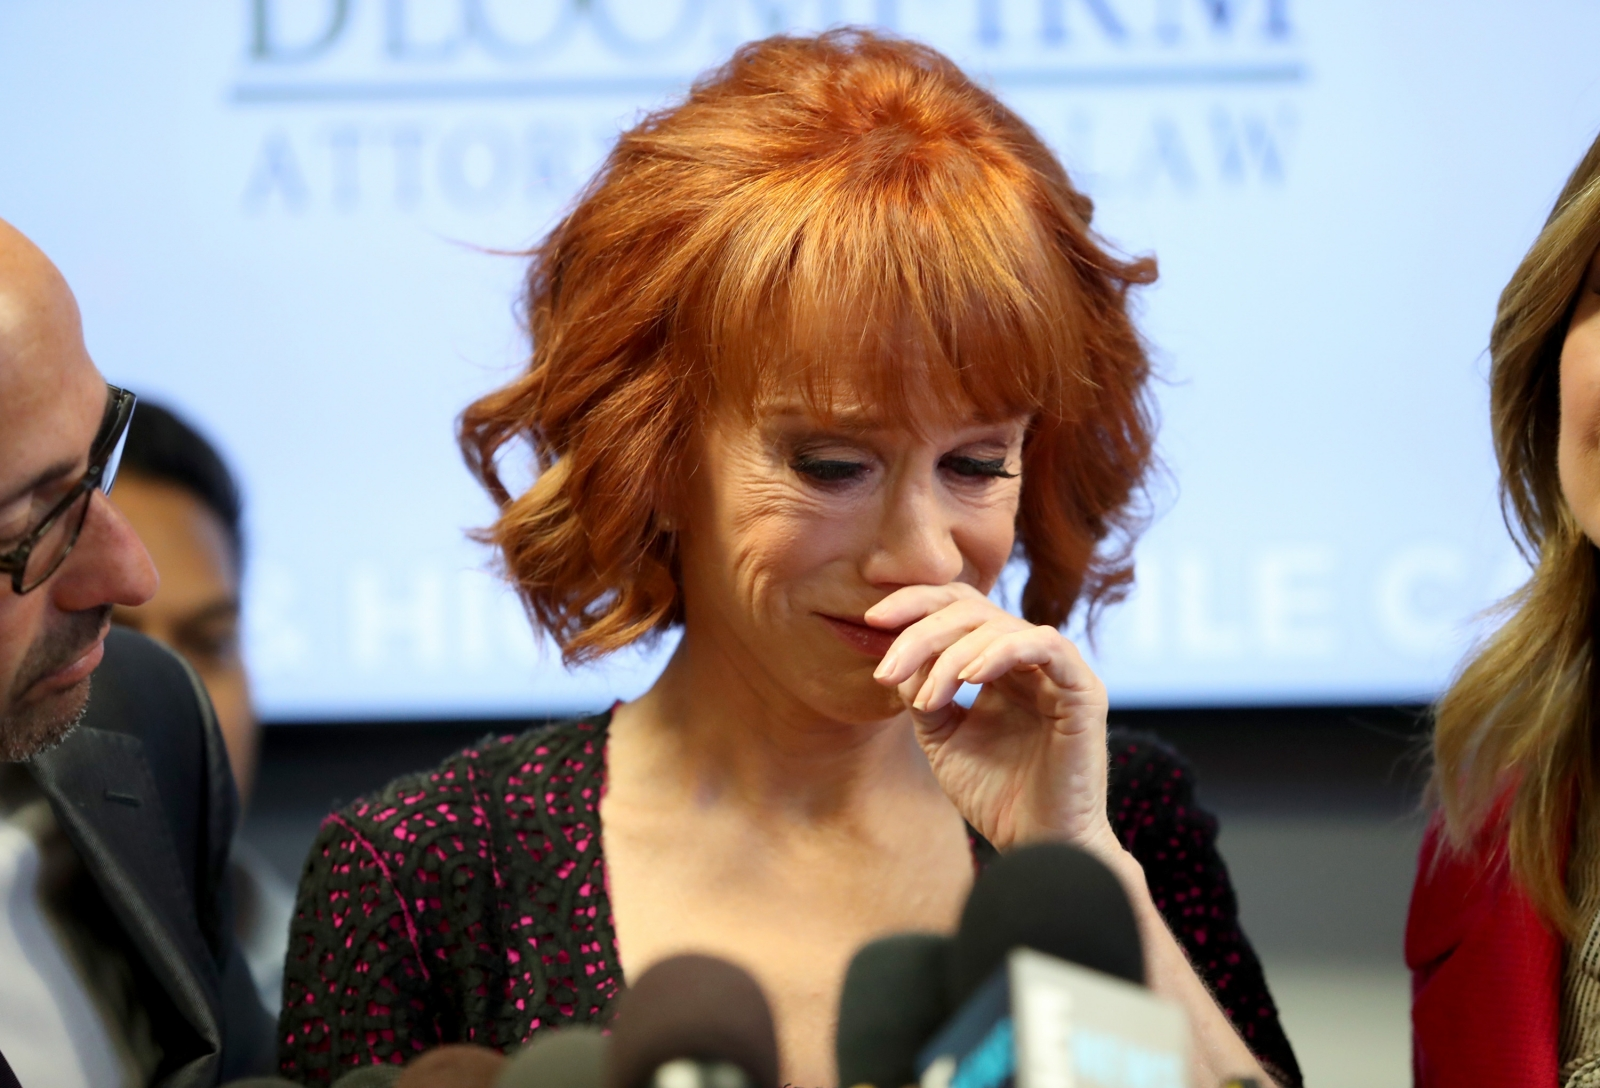 Jamie Foxx Urges Fans Not To Kill The Comedian Kathy Griffin Following Trump Decapitation Stunt